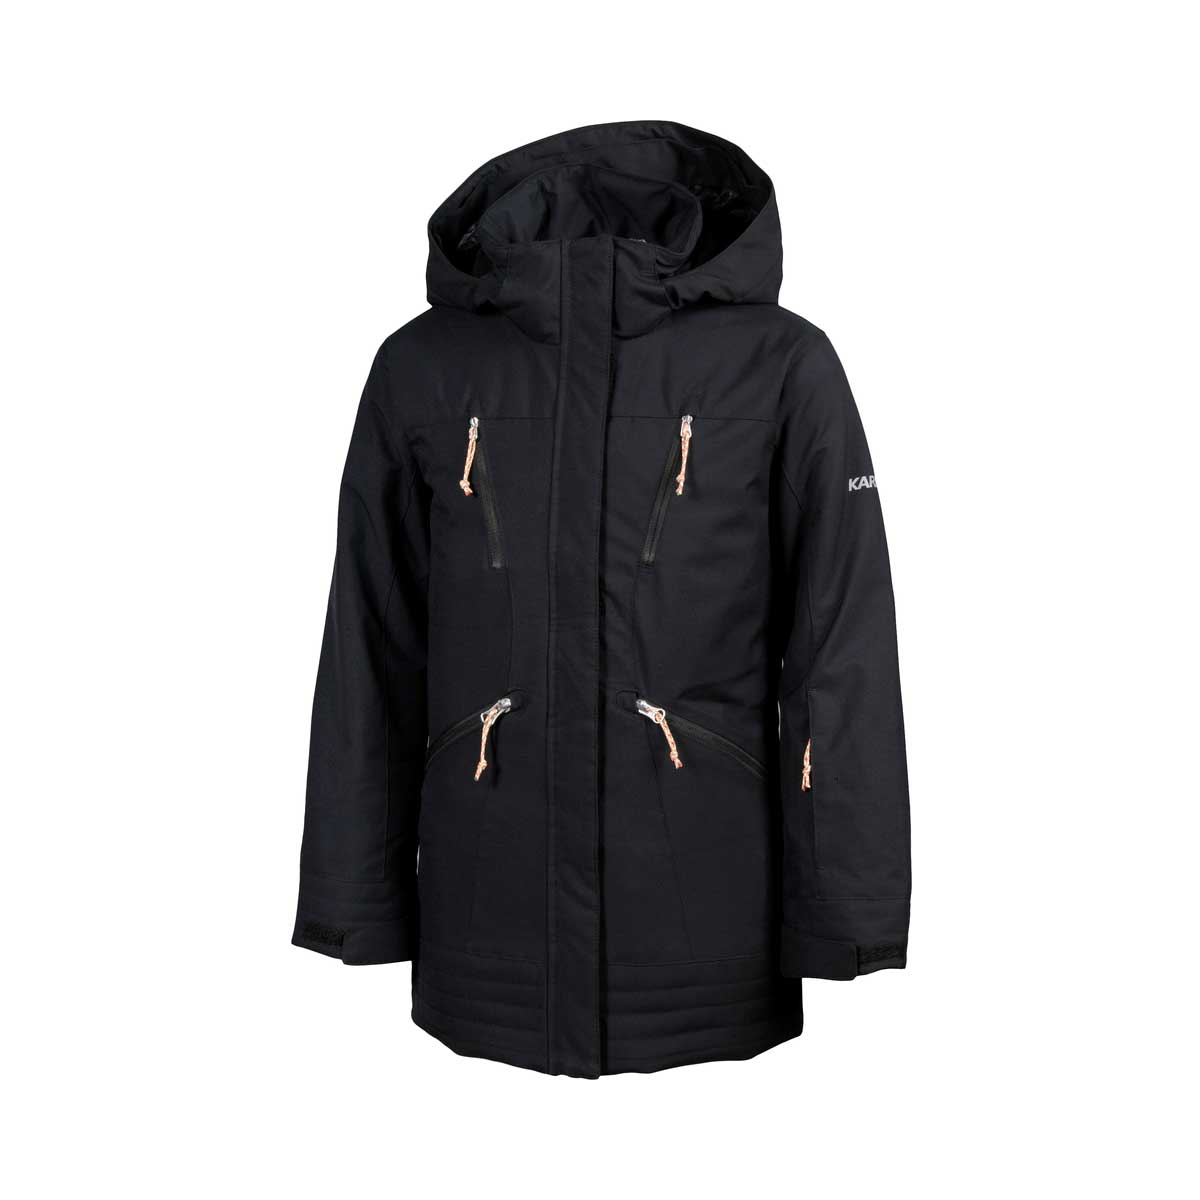 Karbon Girls' Nixie Jacket in Black